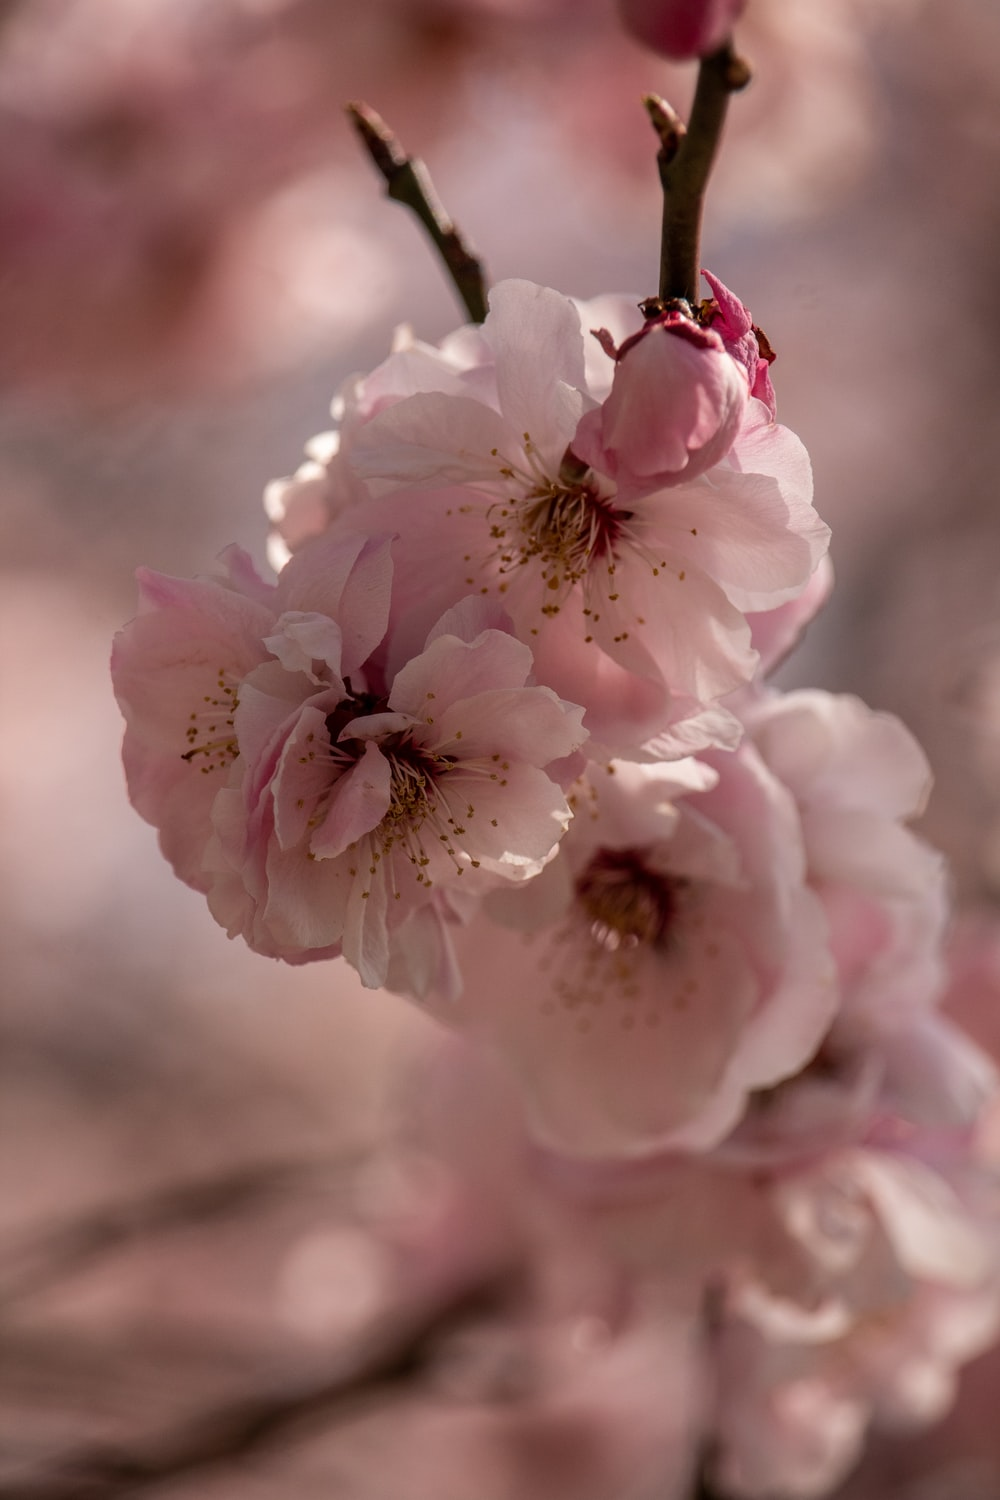 pink cherry blossoms in closeup photography